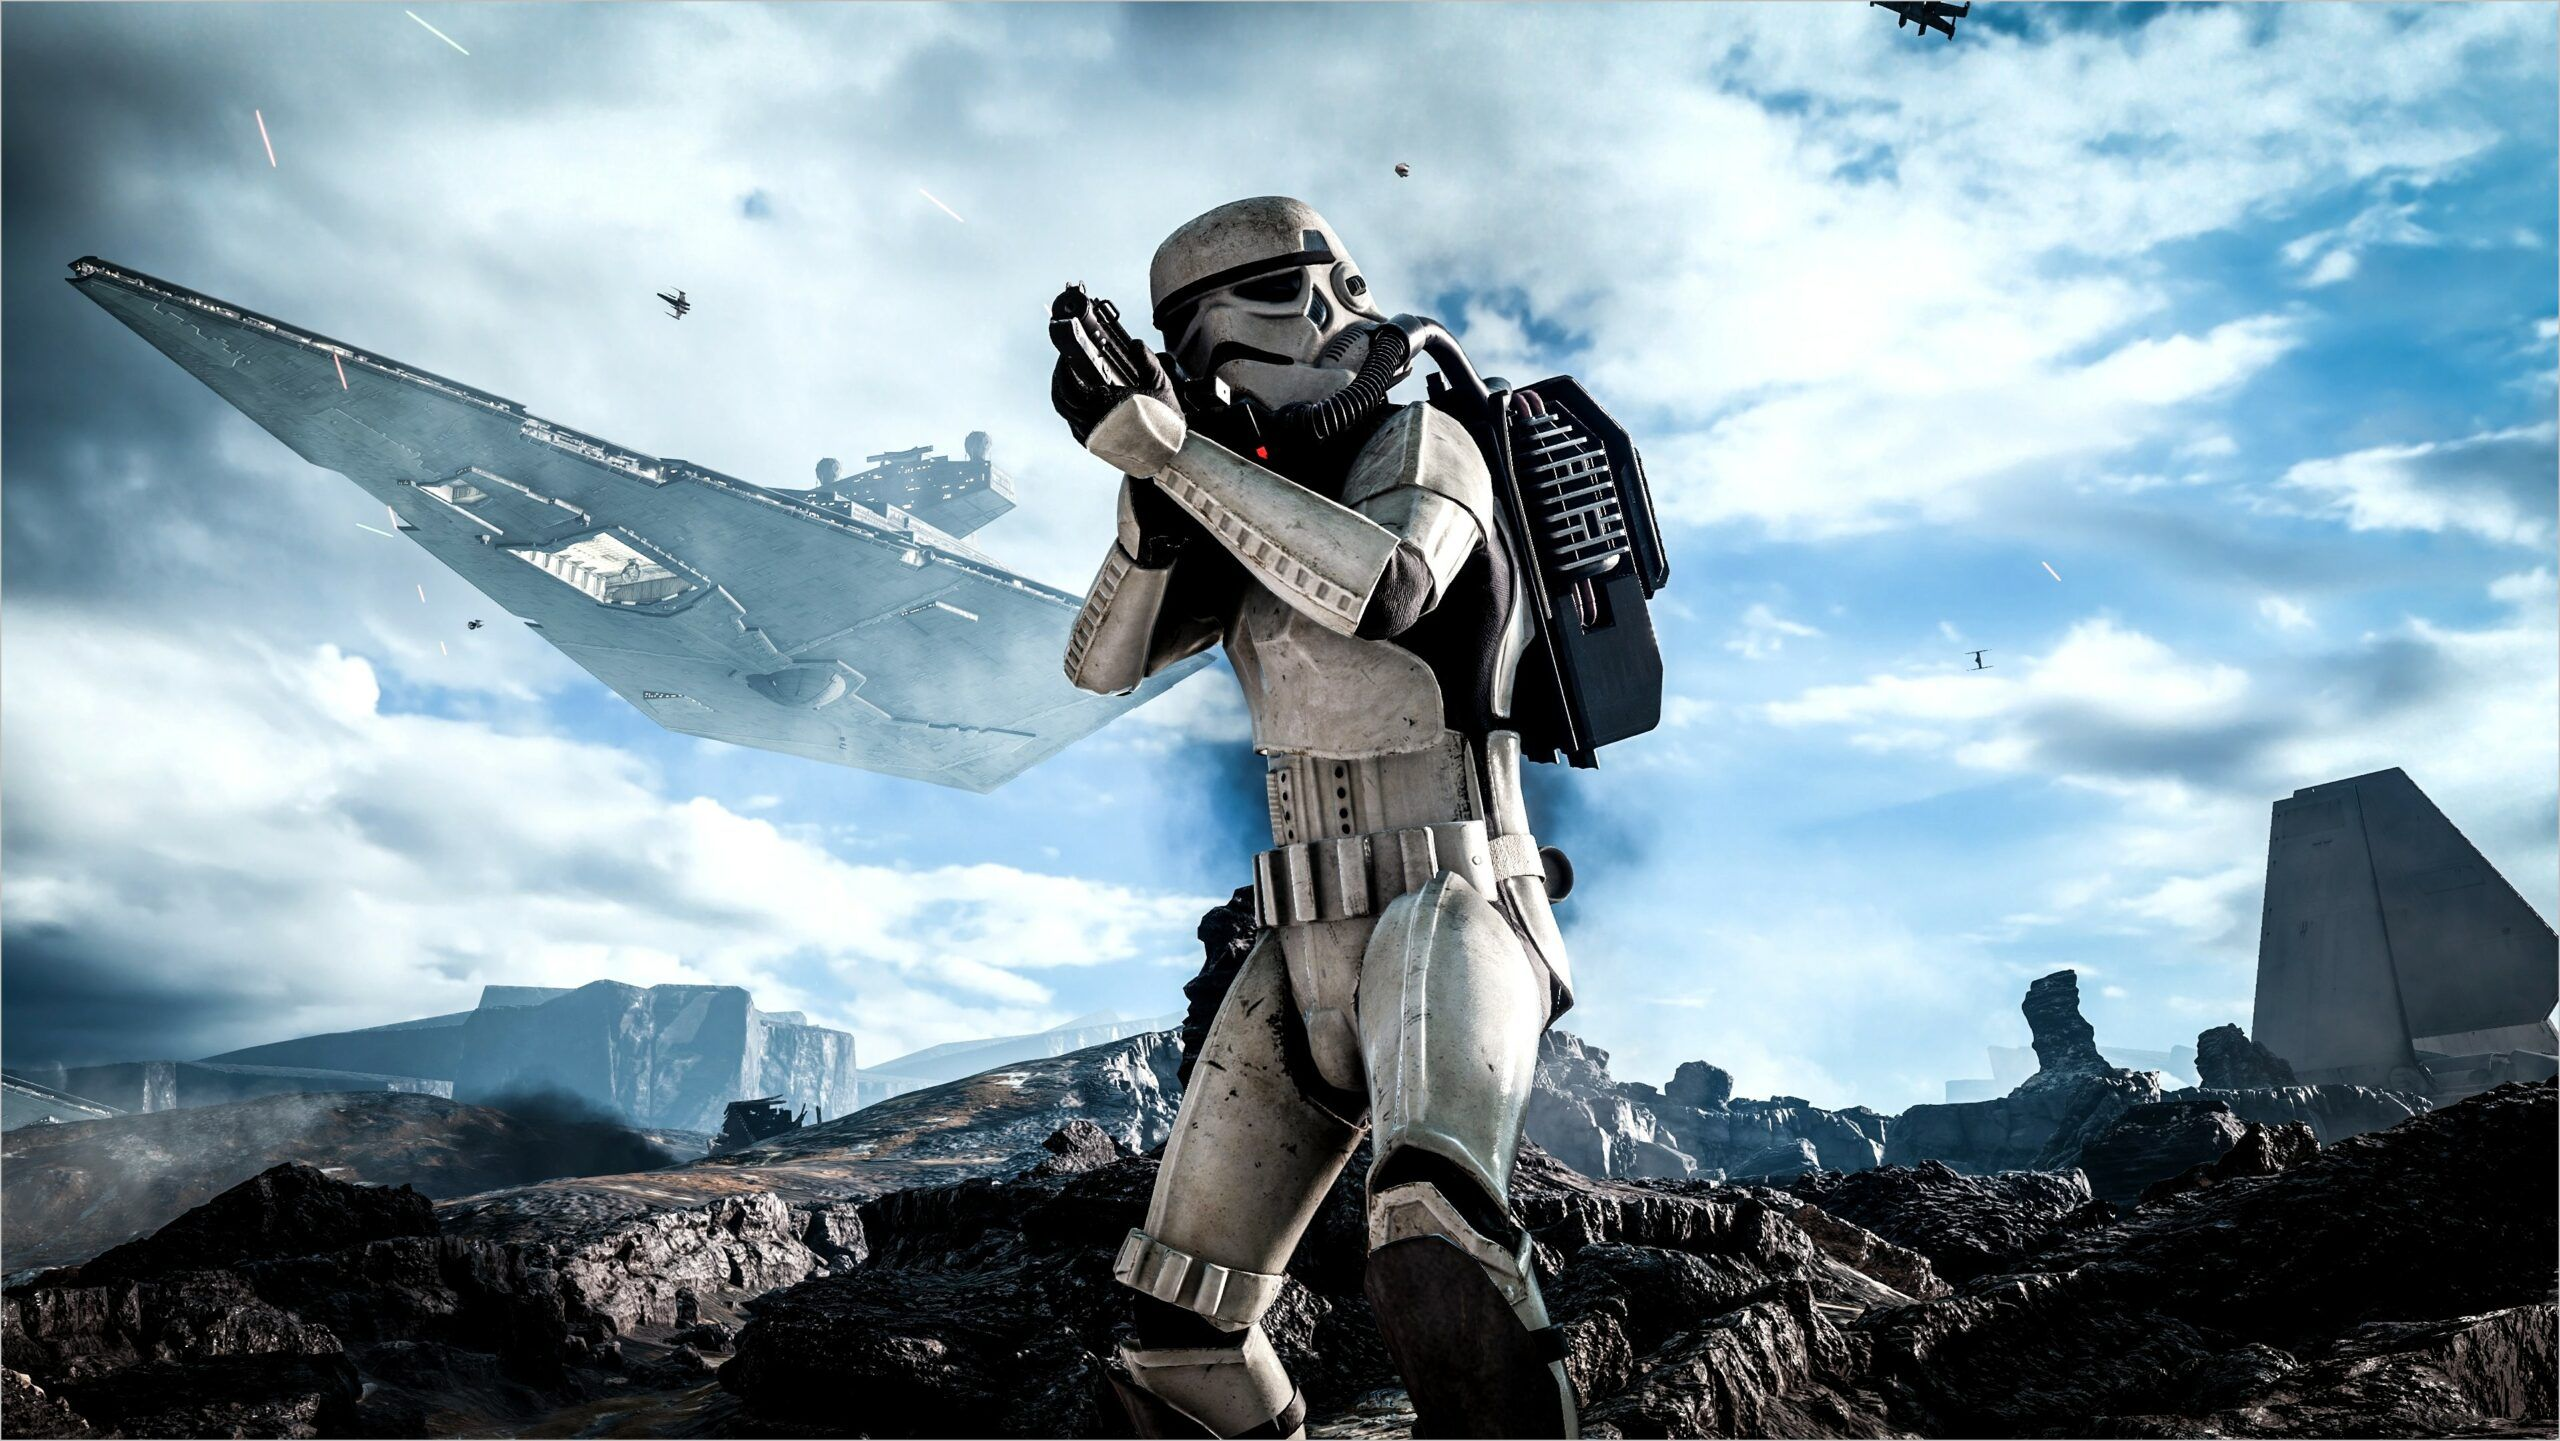 Star Wars Battlefront 4k Wallpaper Mac In 2020 Star Wars Wallpaper Star Wars Background Rey Star Wars